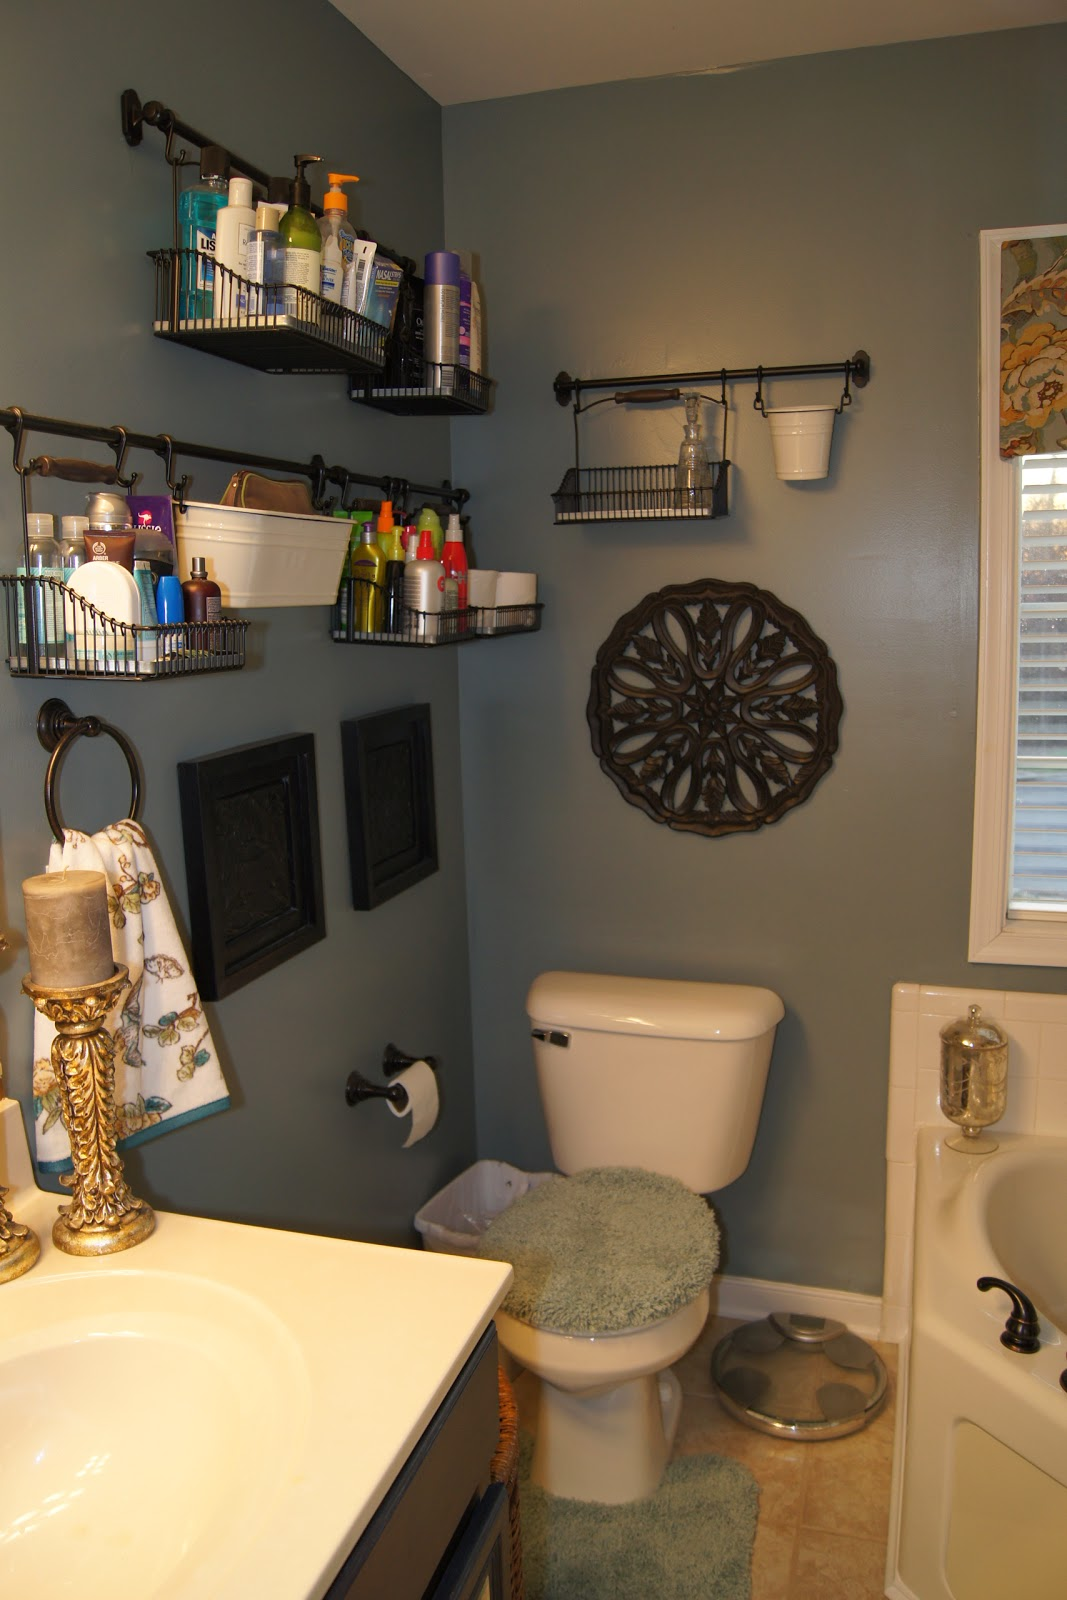 The master bathroom vanity for real this time cathgrace - Bathroom vanity storage solutions ...